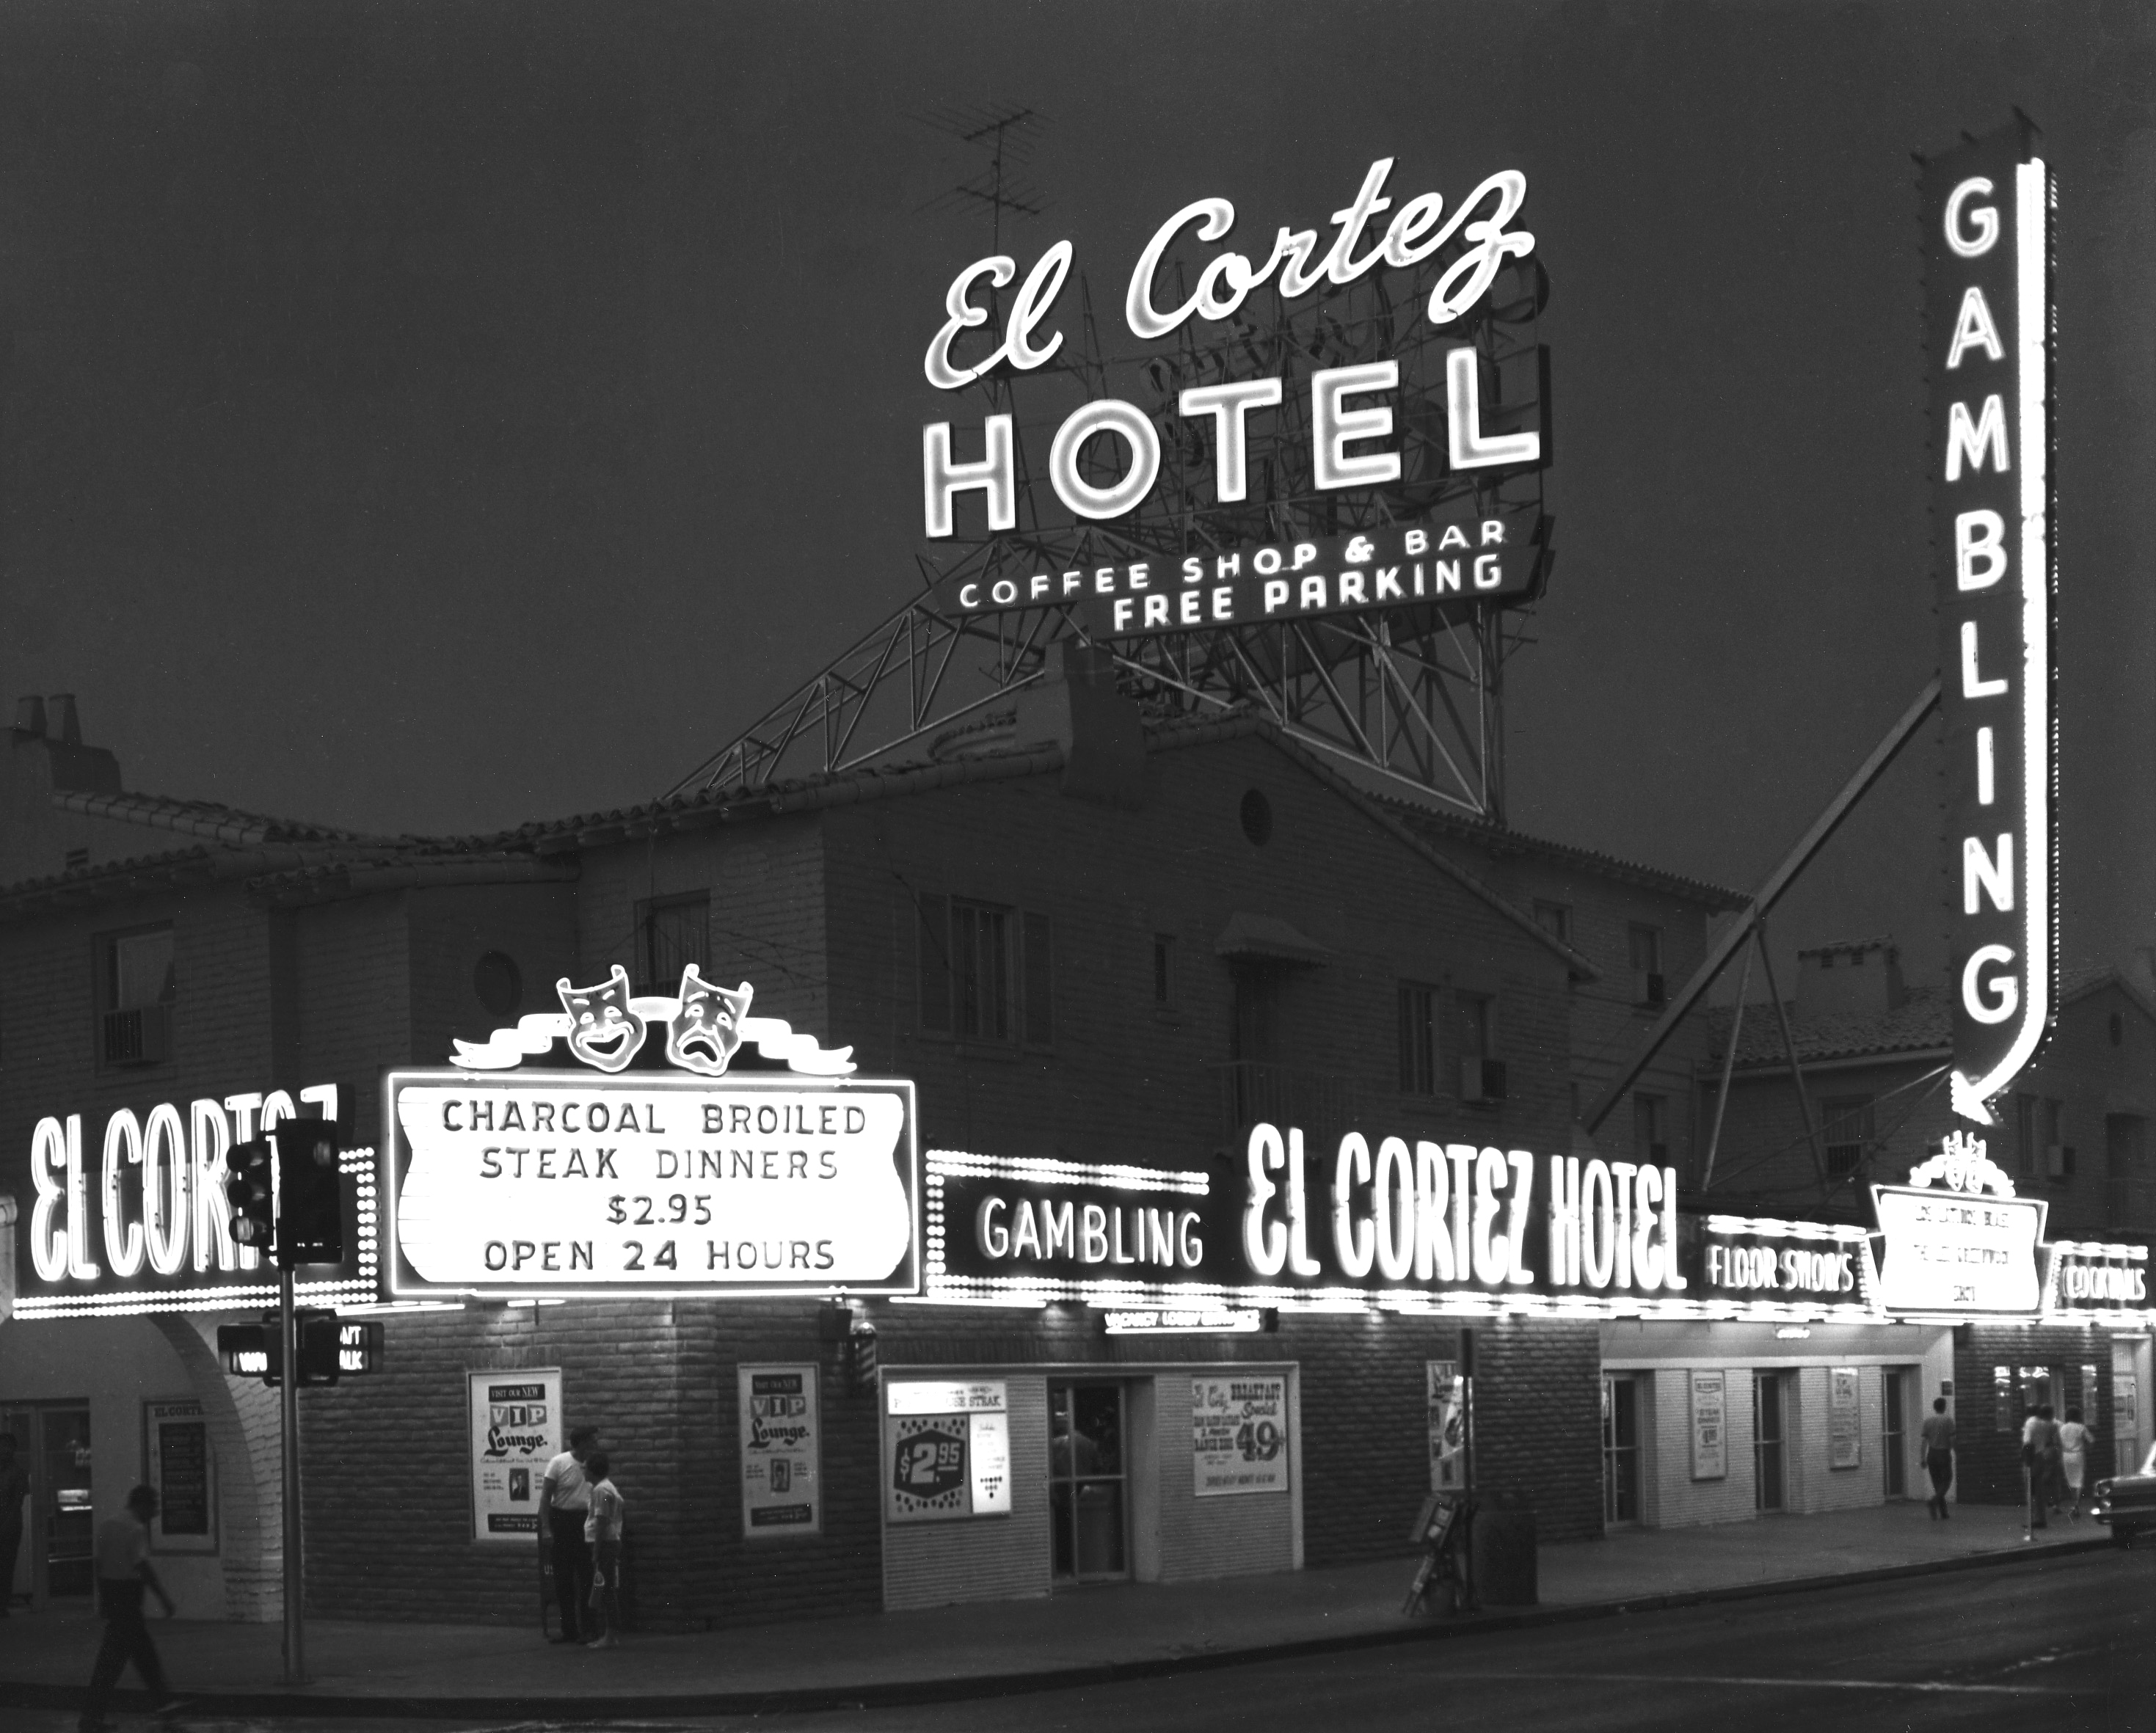 Exterior of the El Cortez in downtown Las Vegas 07/11/66. It looks more colorful now. Photo courtesy of El Cortez.